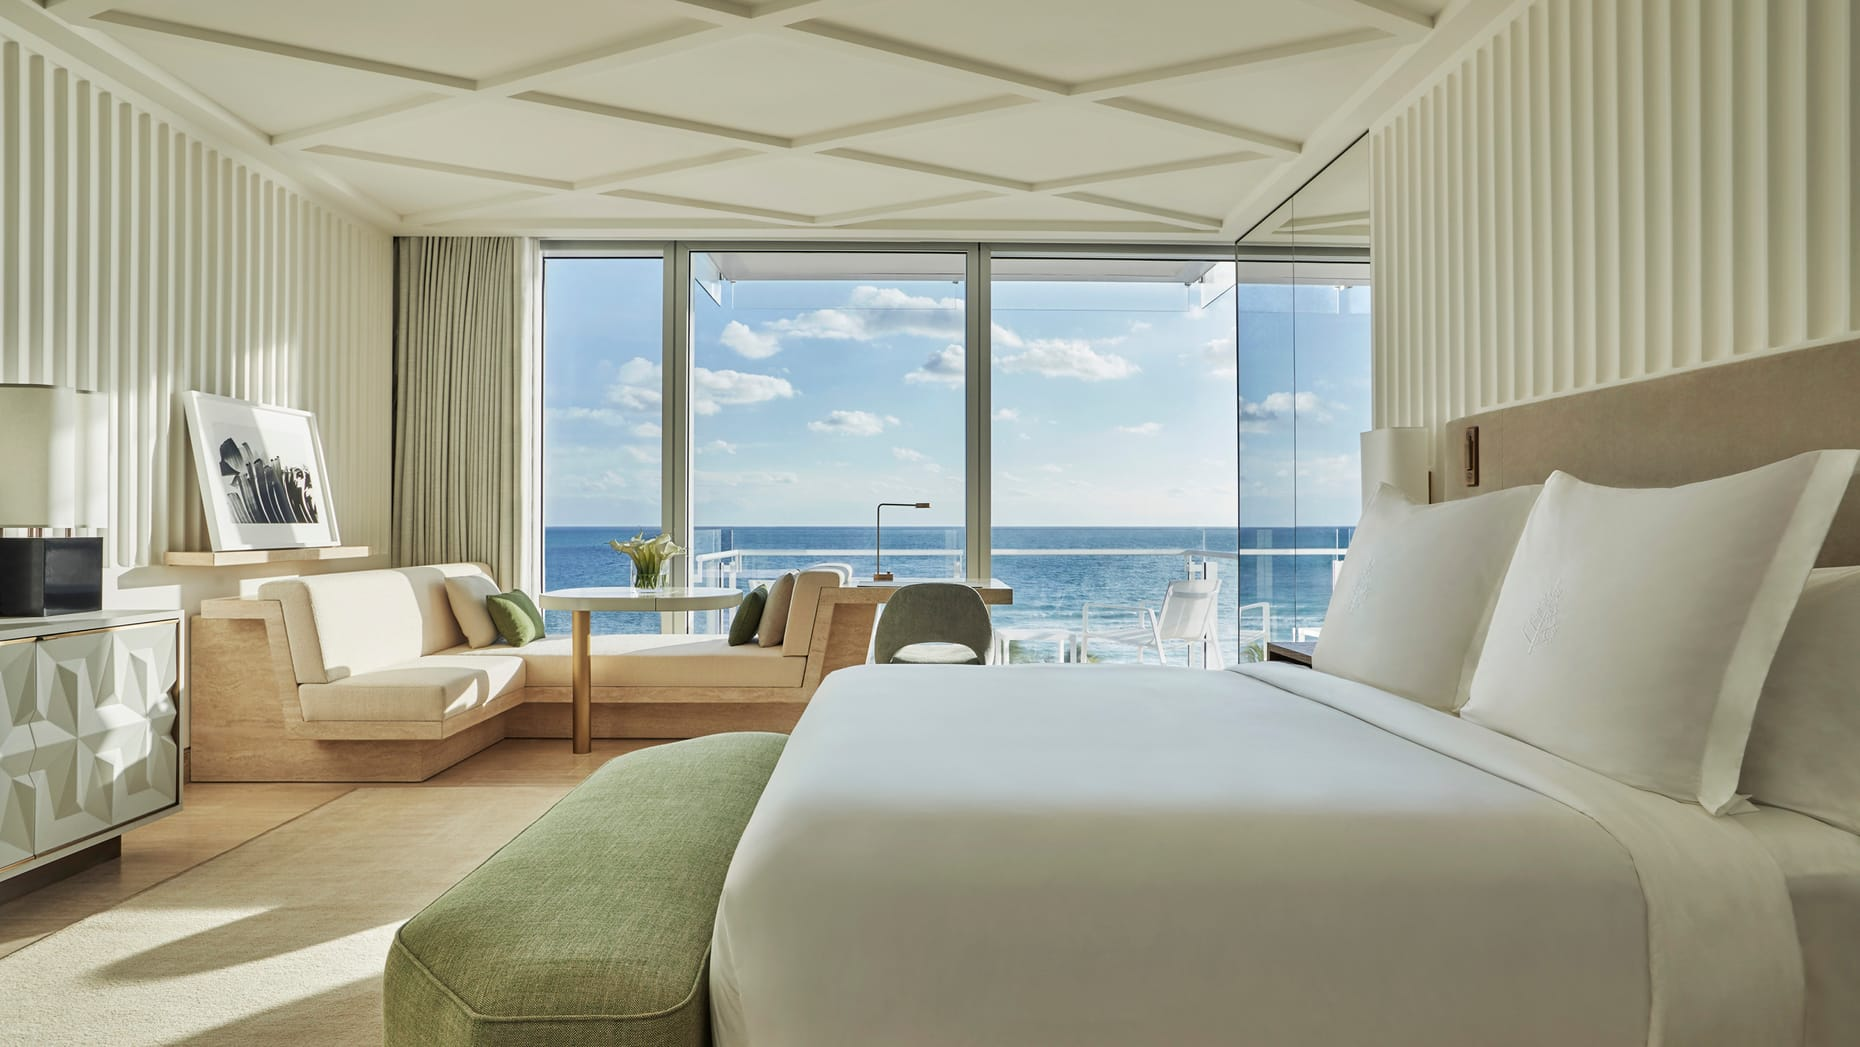 four_seasons_surfside_beach_rooms_miami_beach